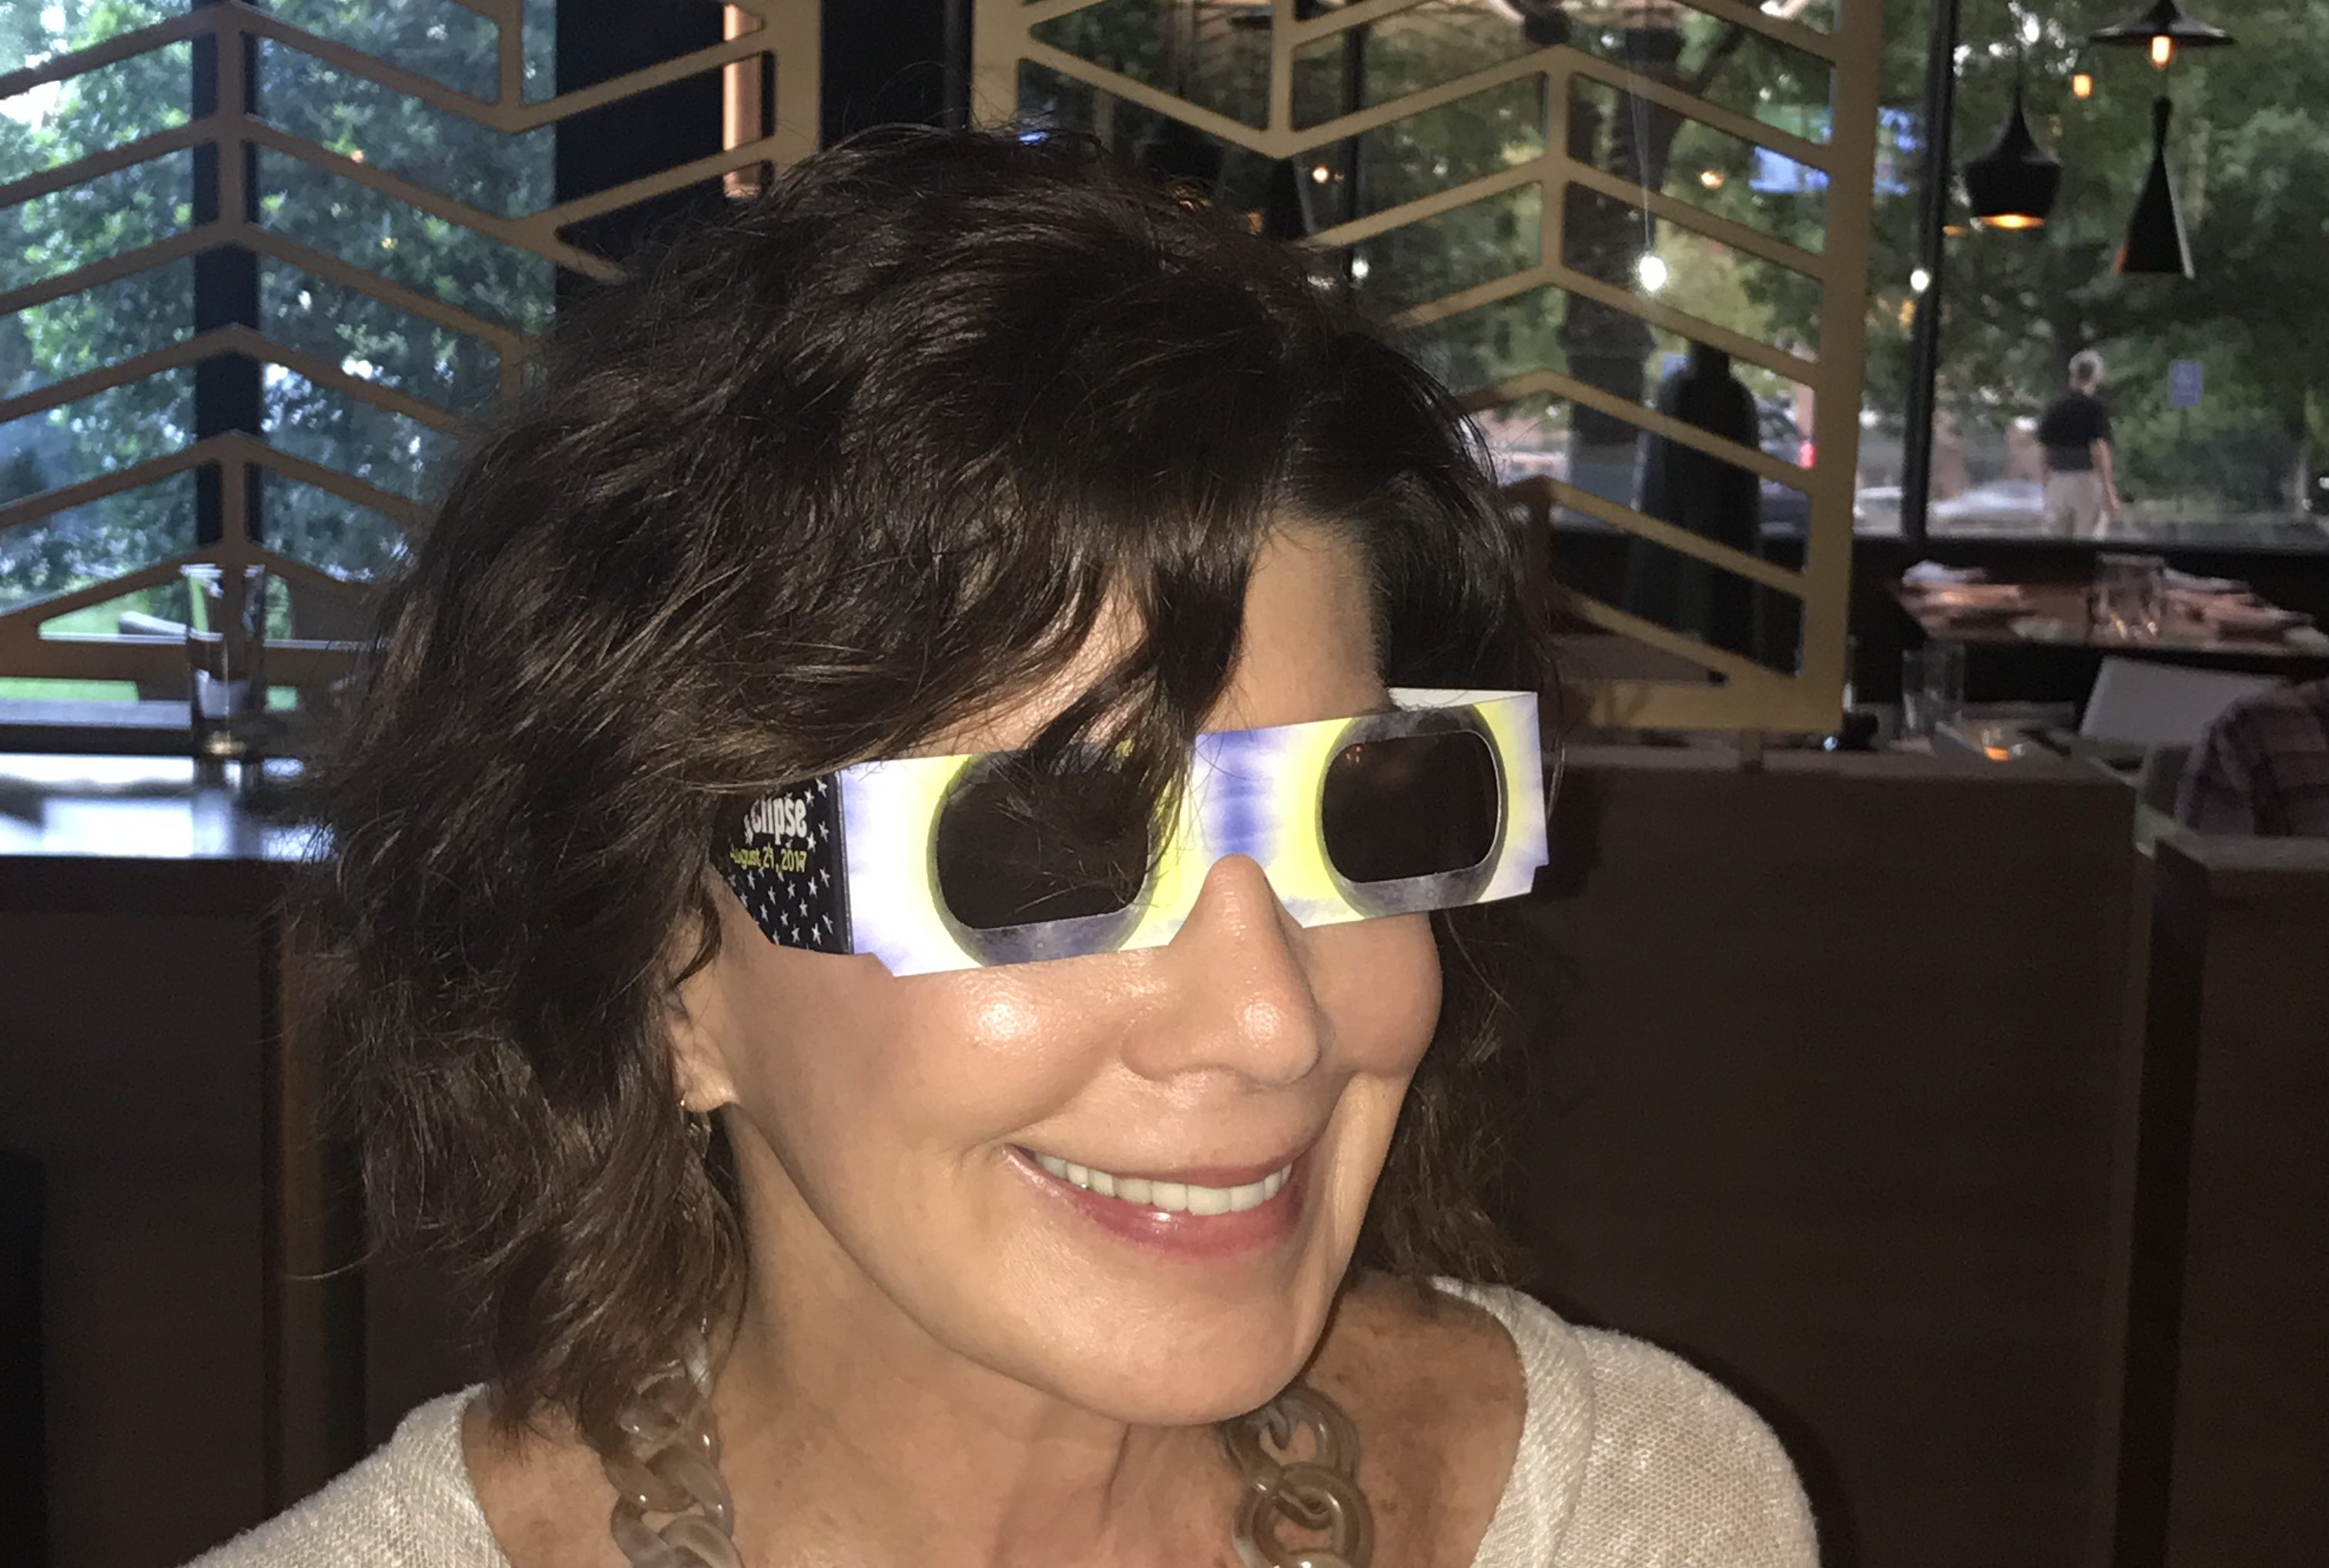 Arlene W. Leib finally found her eclipse glasses